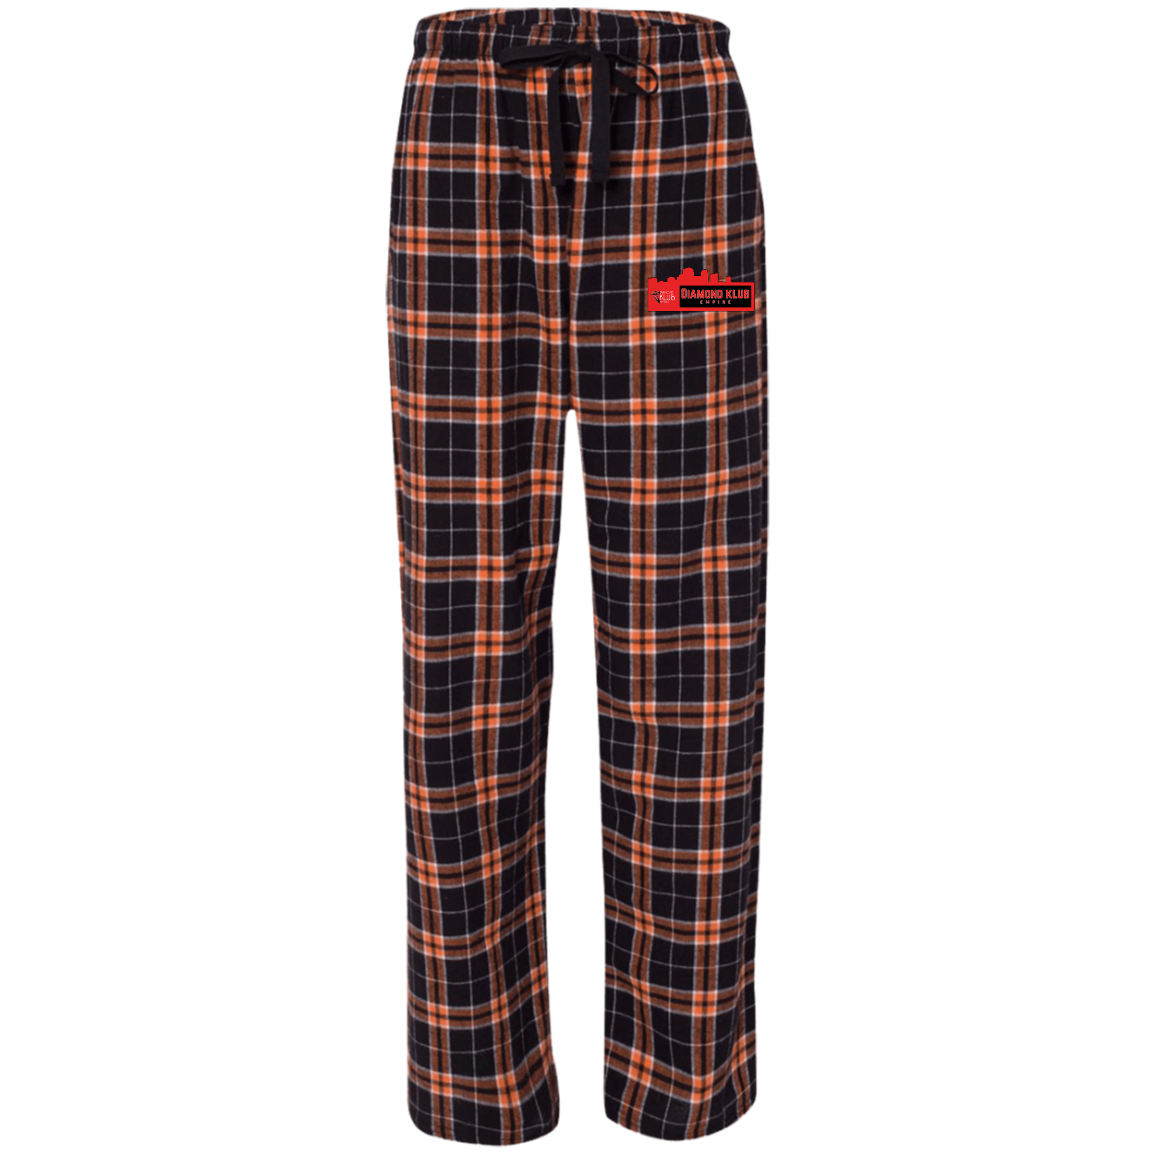 Diamond Klub Empire Embroidered Logo Boxercraft Unisex Flannel Pants